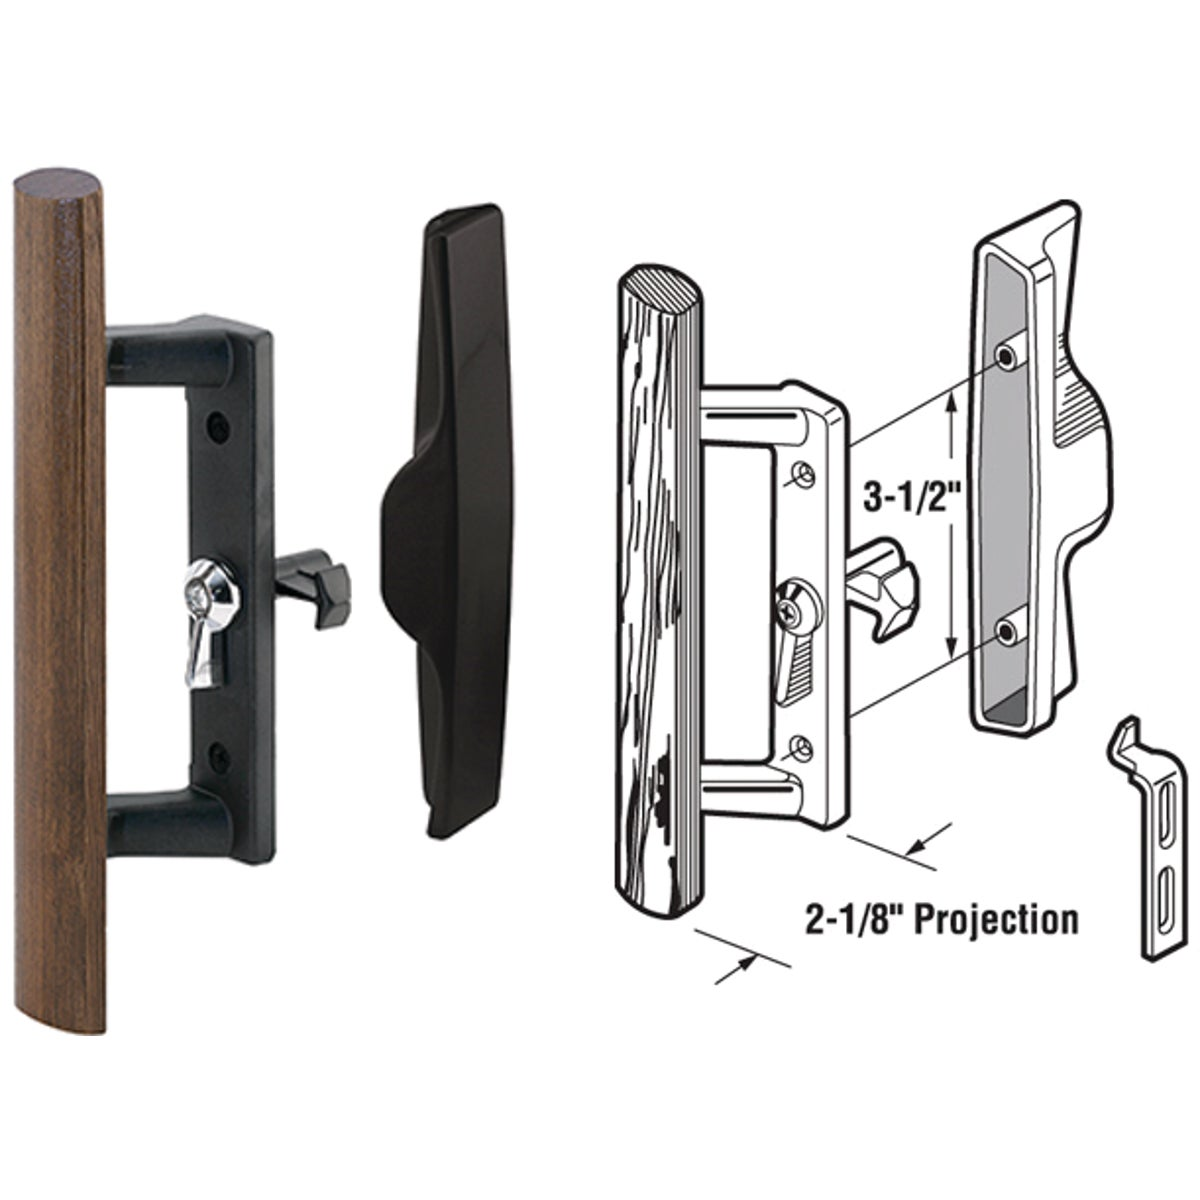 SLIDING DOOR HANDLE SET